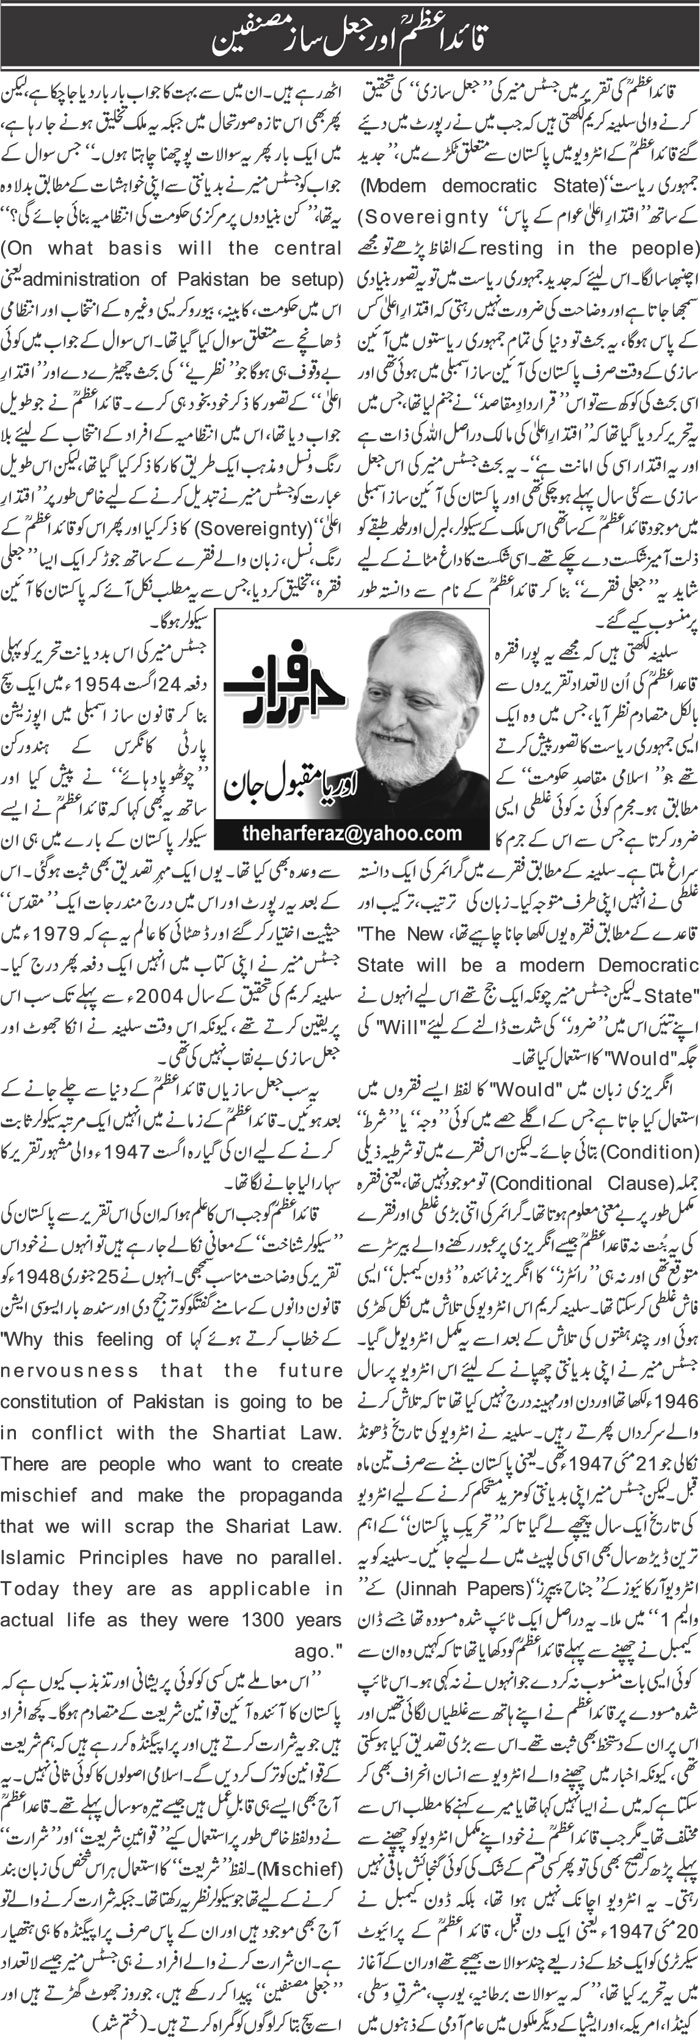 orya maqbool jan columns, orya maqbool jan latest, orya maqbool jan columns in urdu, orya maqbool jan latest column, orya maqbool jan daughter, orya maqbool jan twitter, orya maqbool jan books, orya maqbool jan articles, orya maqbool jan family, orya maqbool jan latest video, orya maqbool jan latest youtube, orya maqbool jan harf e raz, orya maqbool jan column about bajwa, orya maqbool jan contact number, orya maqbool jan biography, orya maqbool jan columns daily express, orya maqbool jan wife